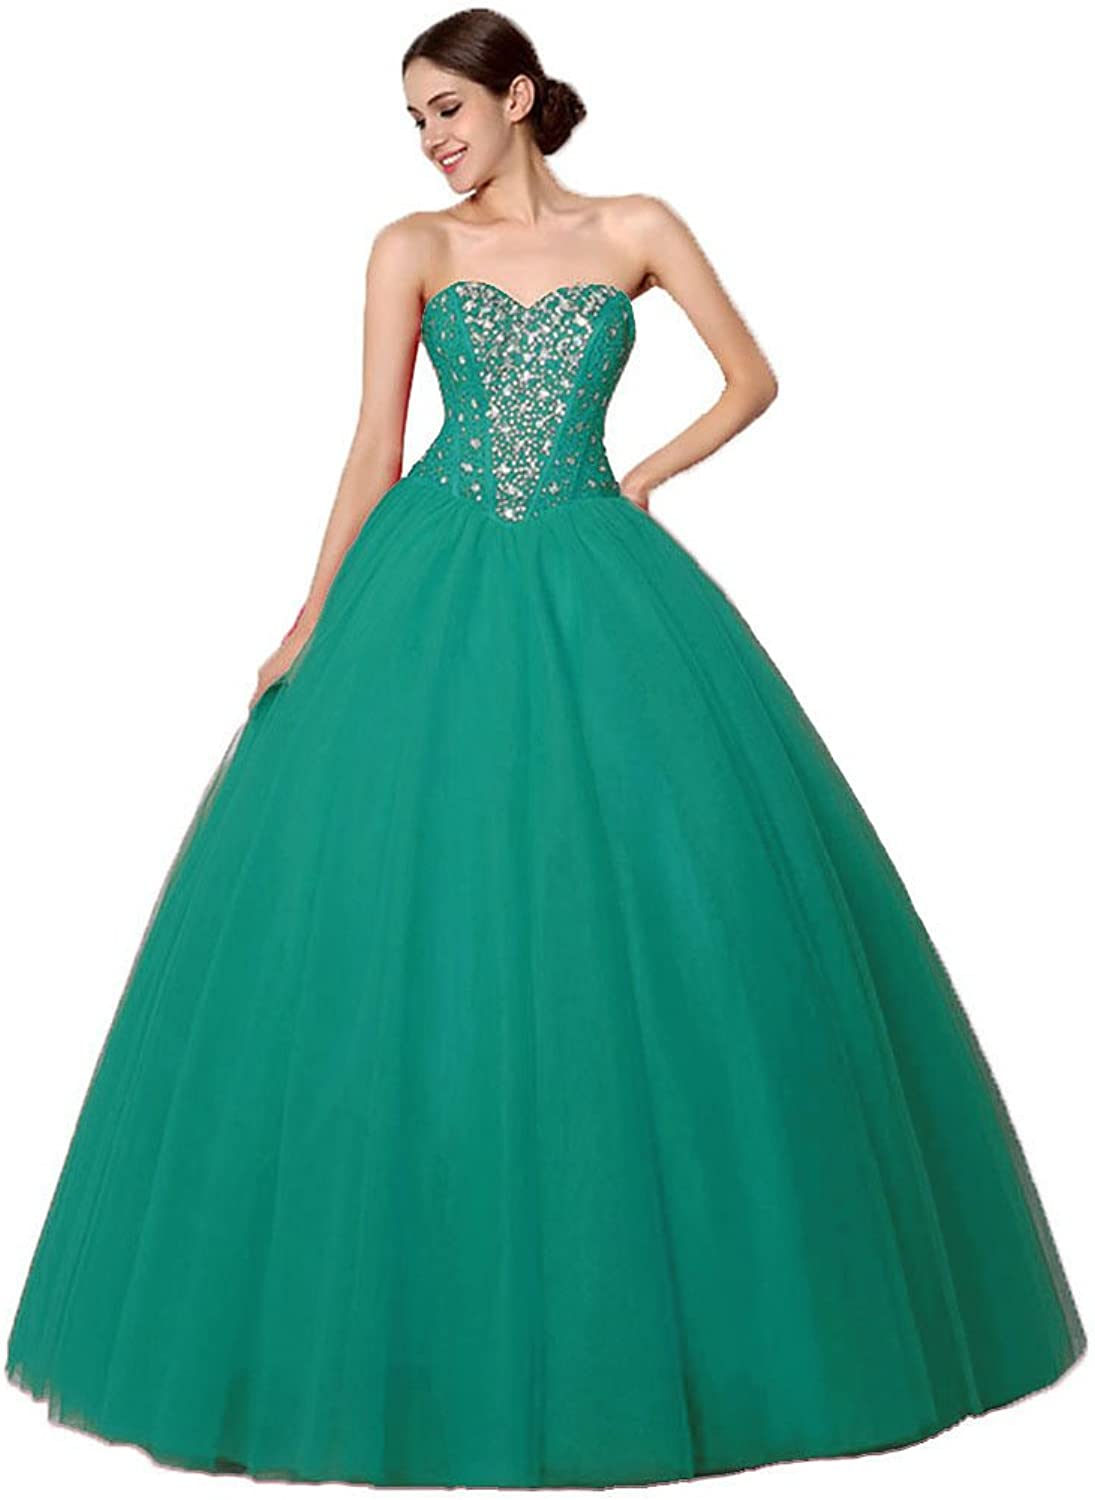 Vantexi Women's Beaded Tulle Prom Dress Quinceanera Ball Gown